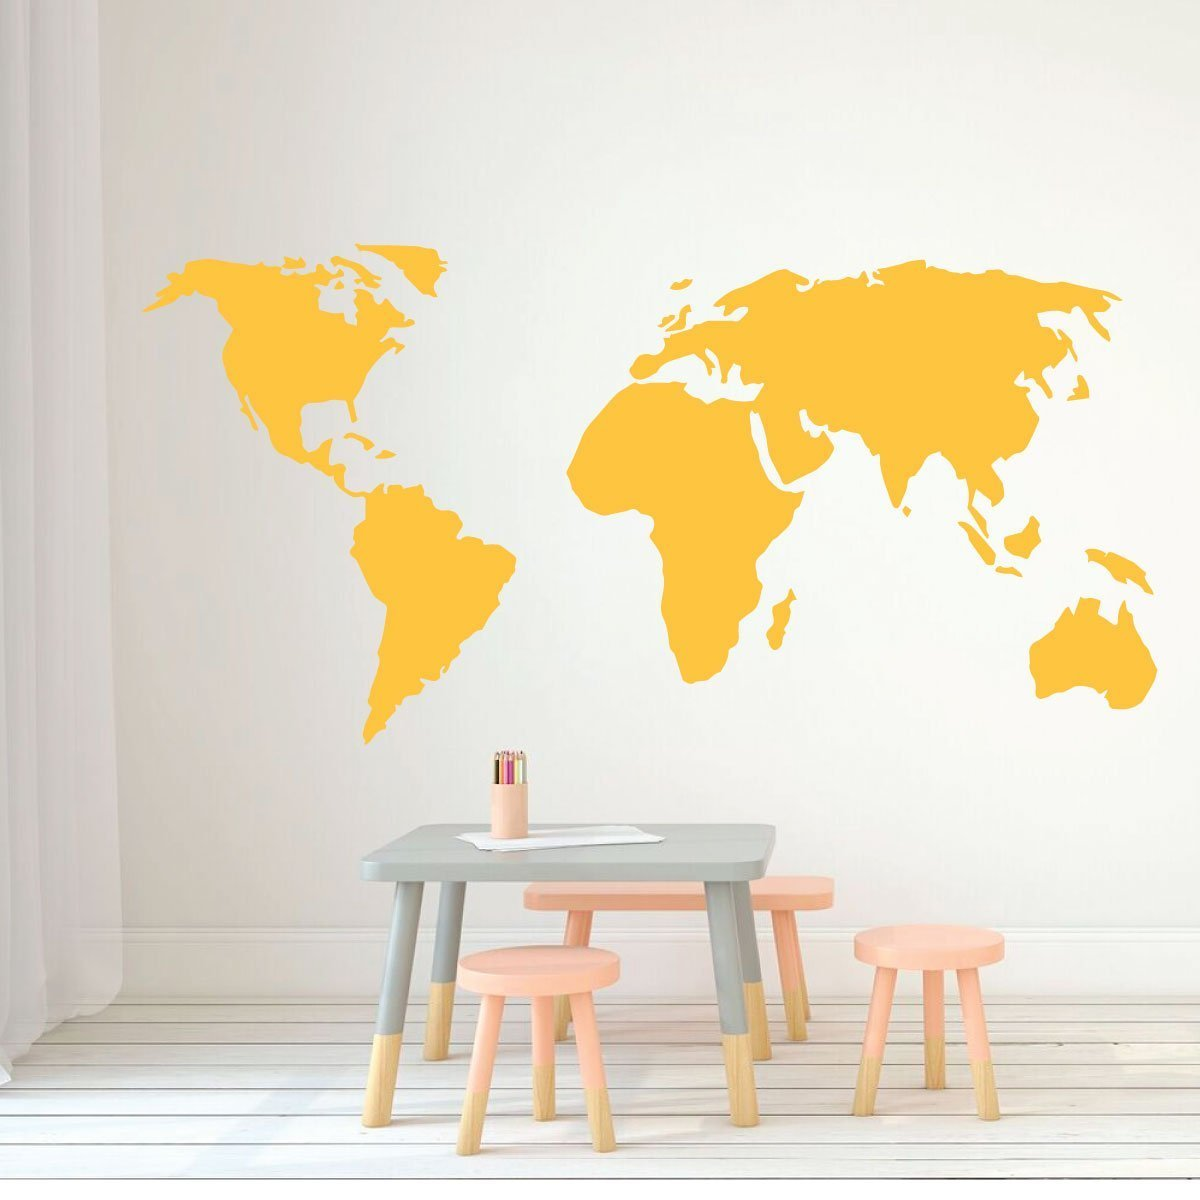 World Map Wall Art . Classroom Decorations - CustomVinylDecor.com